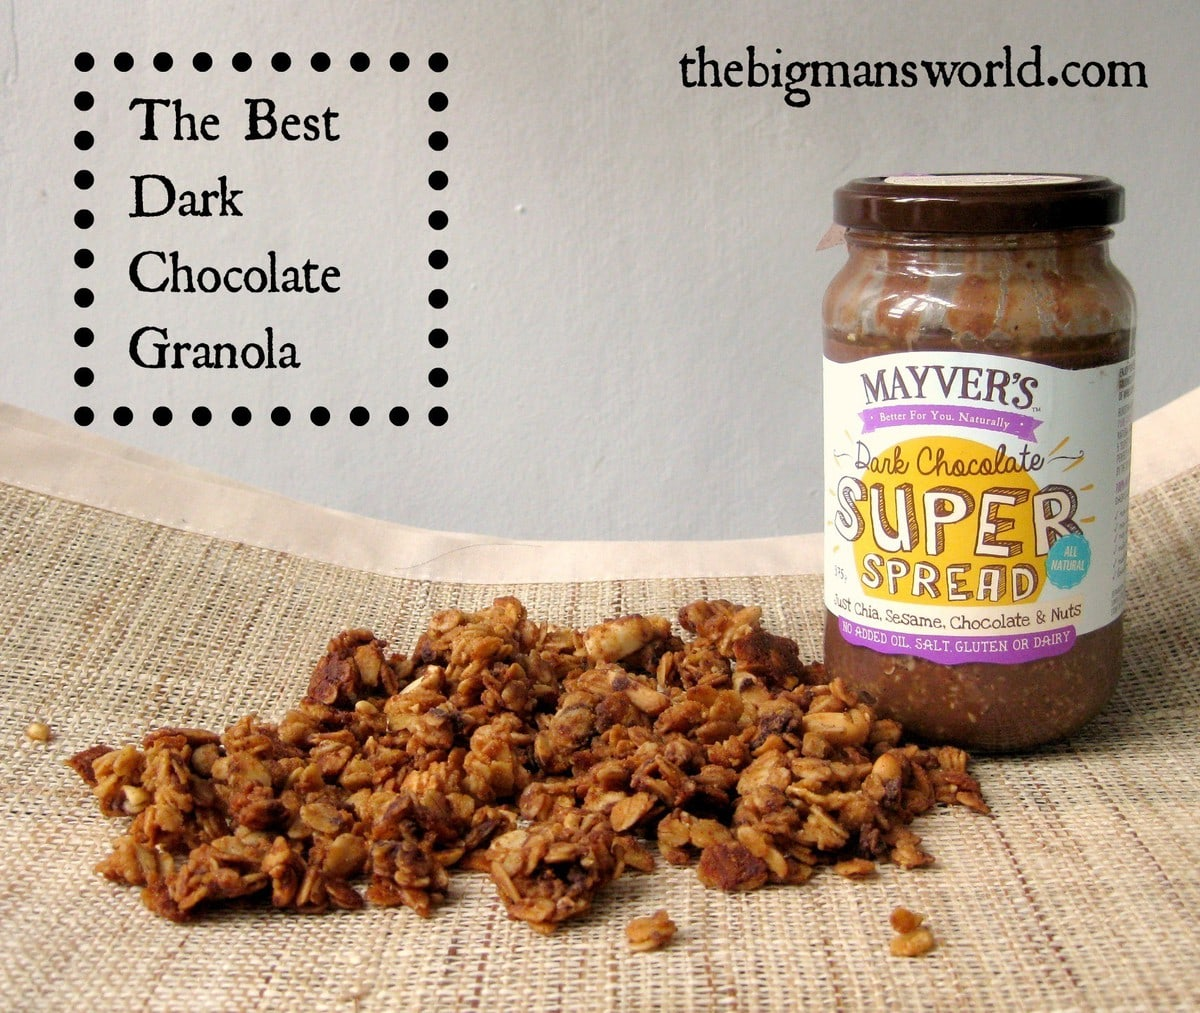 the best dark chocolate granola 2014 08 30 04 55 49 the best tasting ...